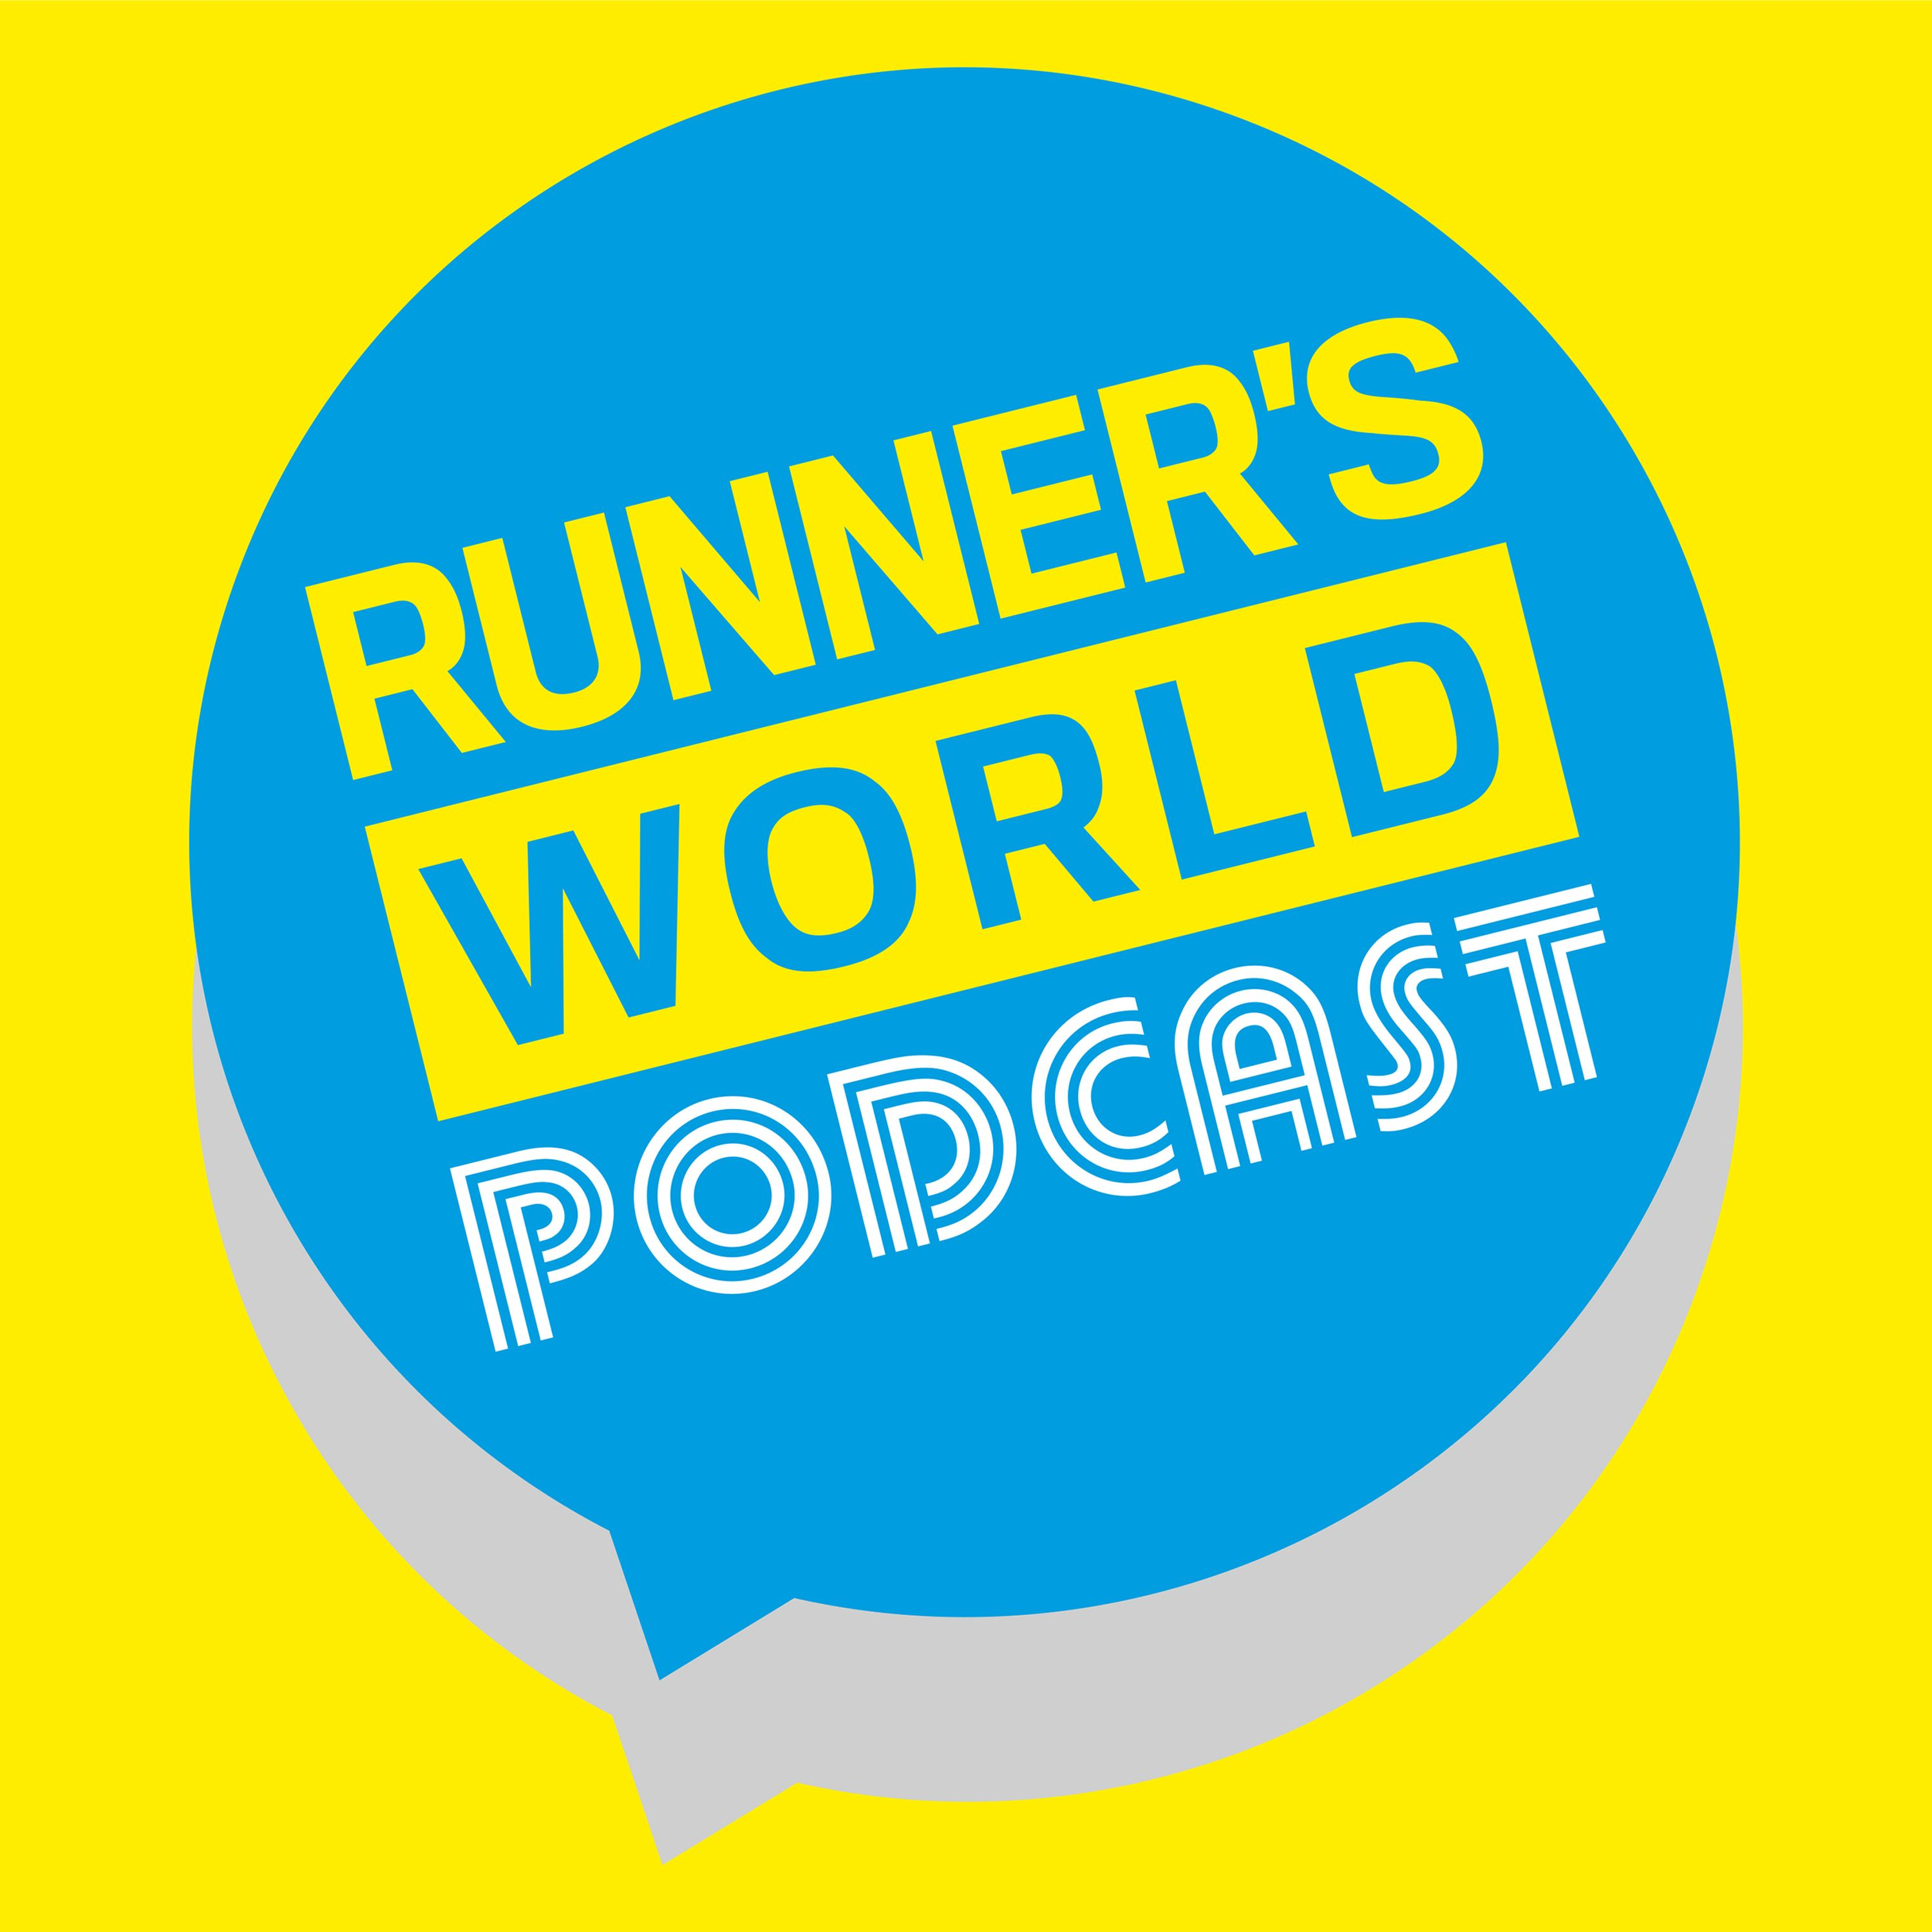 We discuss ultra running in China, with James Poole